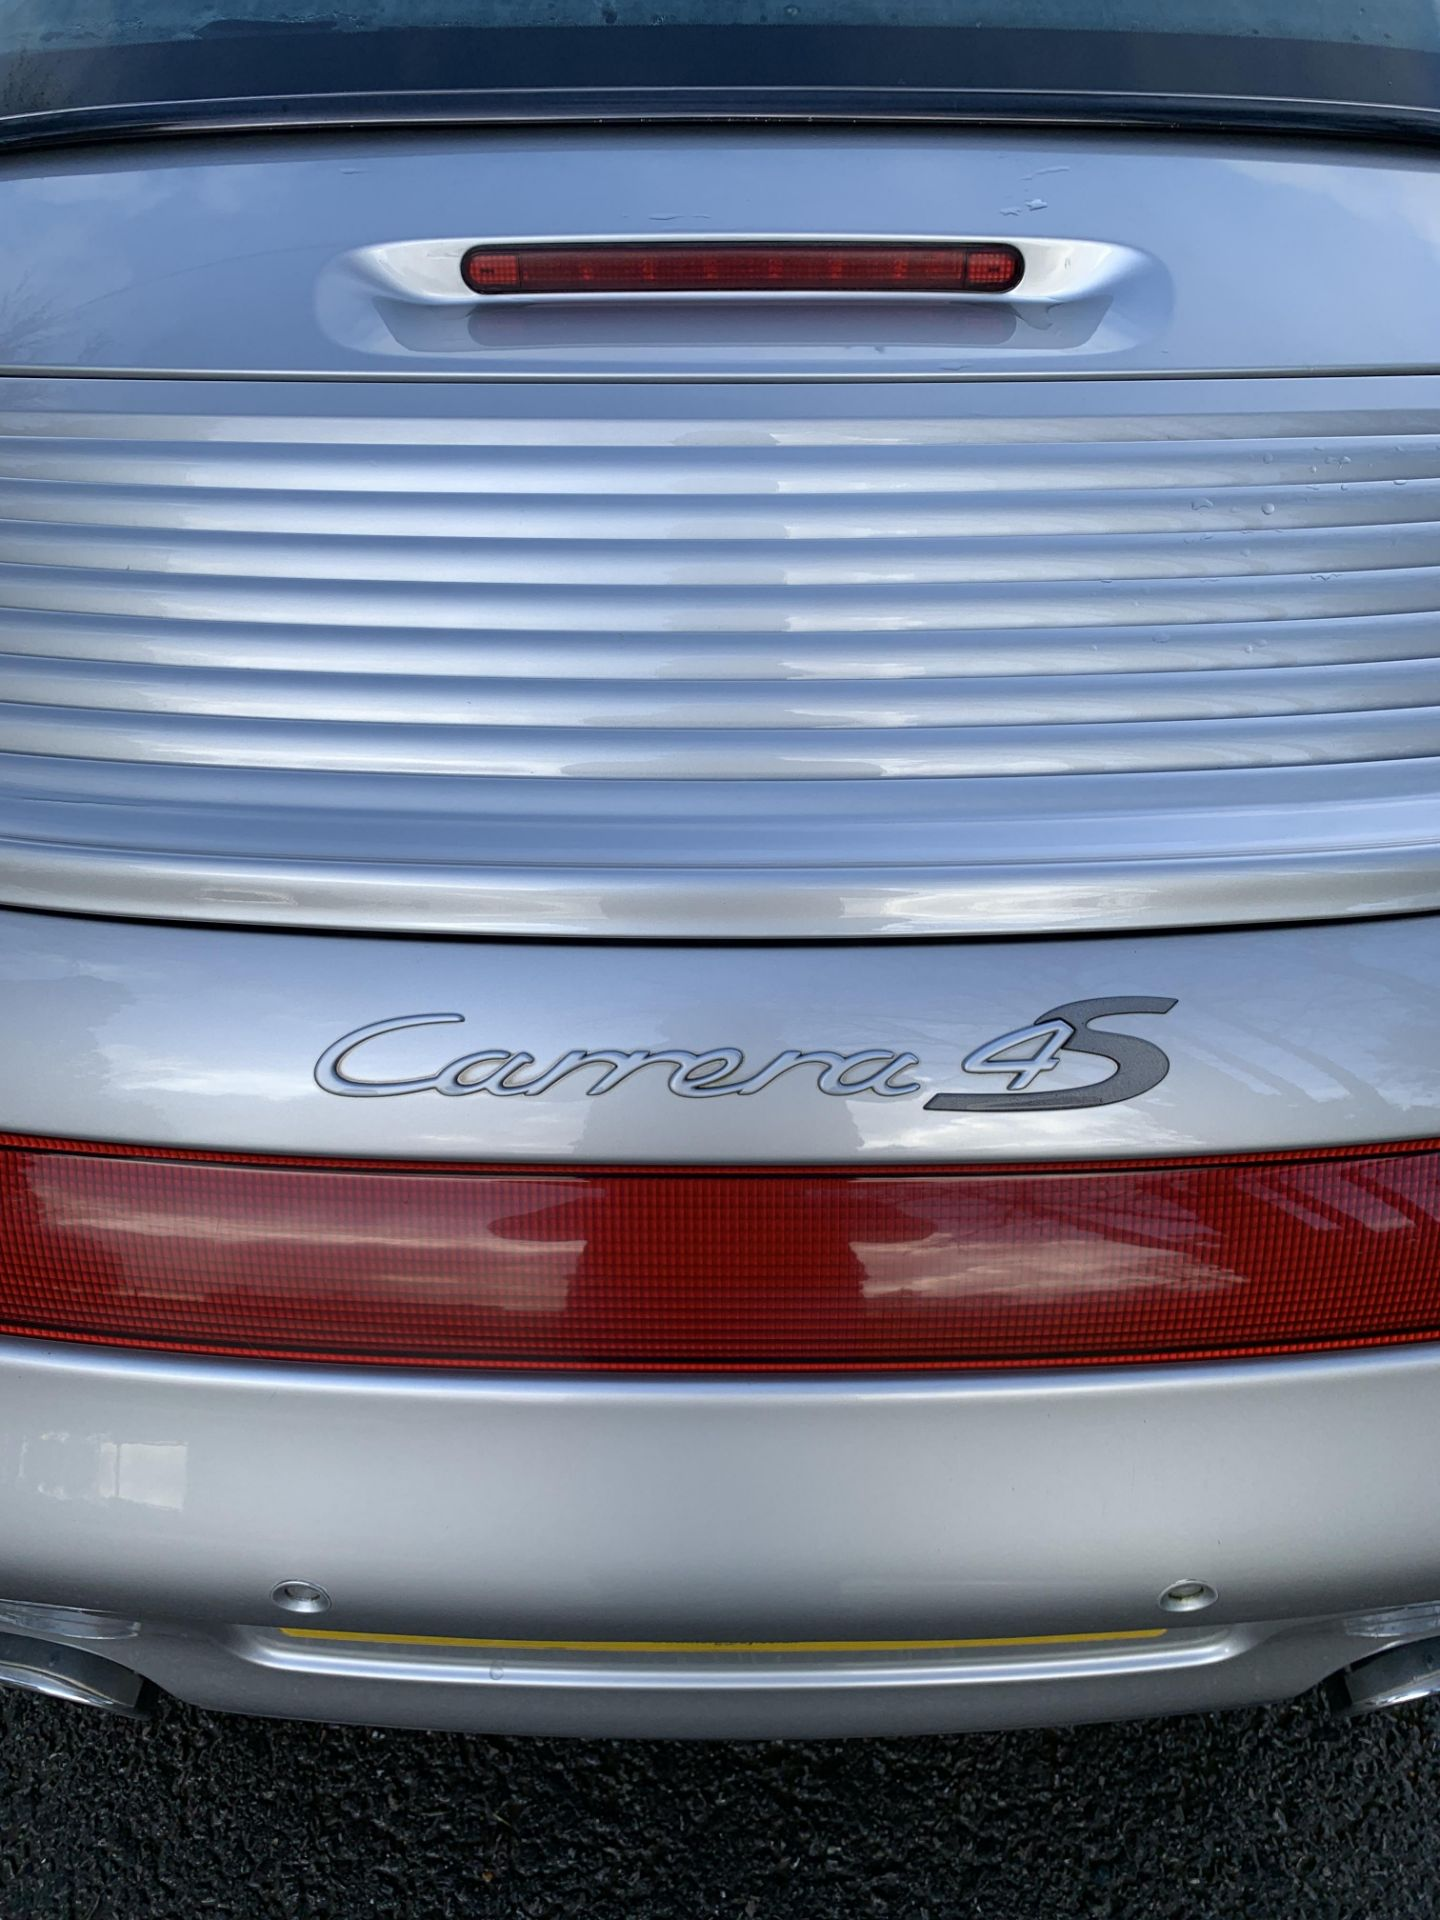 Lot 34 - 2003/53 REG PORSCHE 911 CARRERA 4S TIP S 3.6L PETROL SILVER CONVERTIBLE, SHOWING 3 FORMER KEEPERS